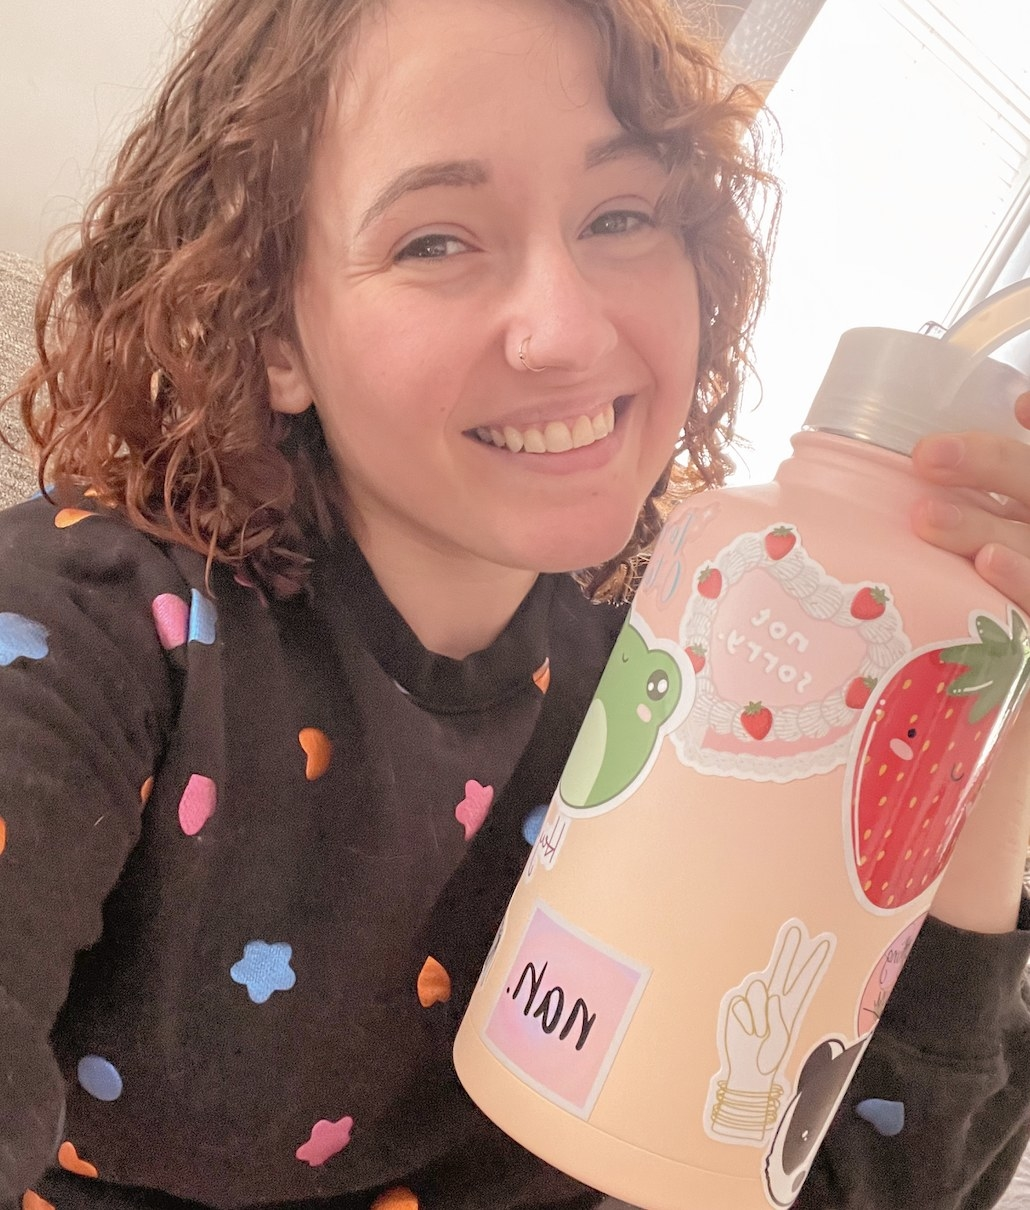 A person smiling while holding a pink water bottle with stickers on it